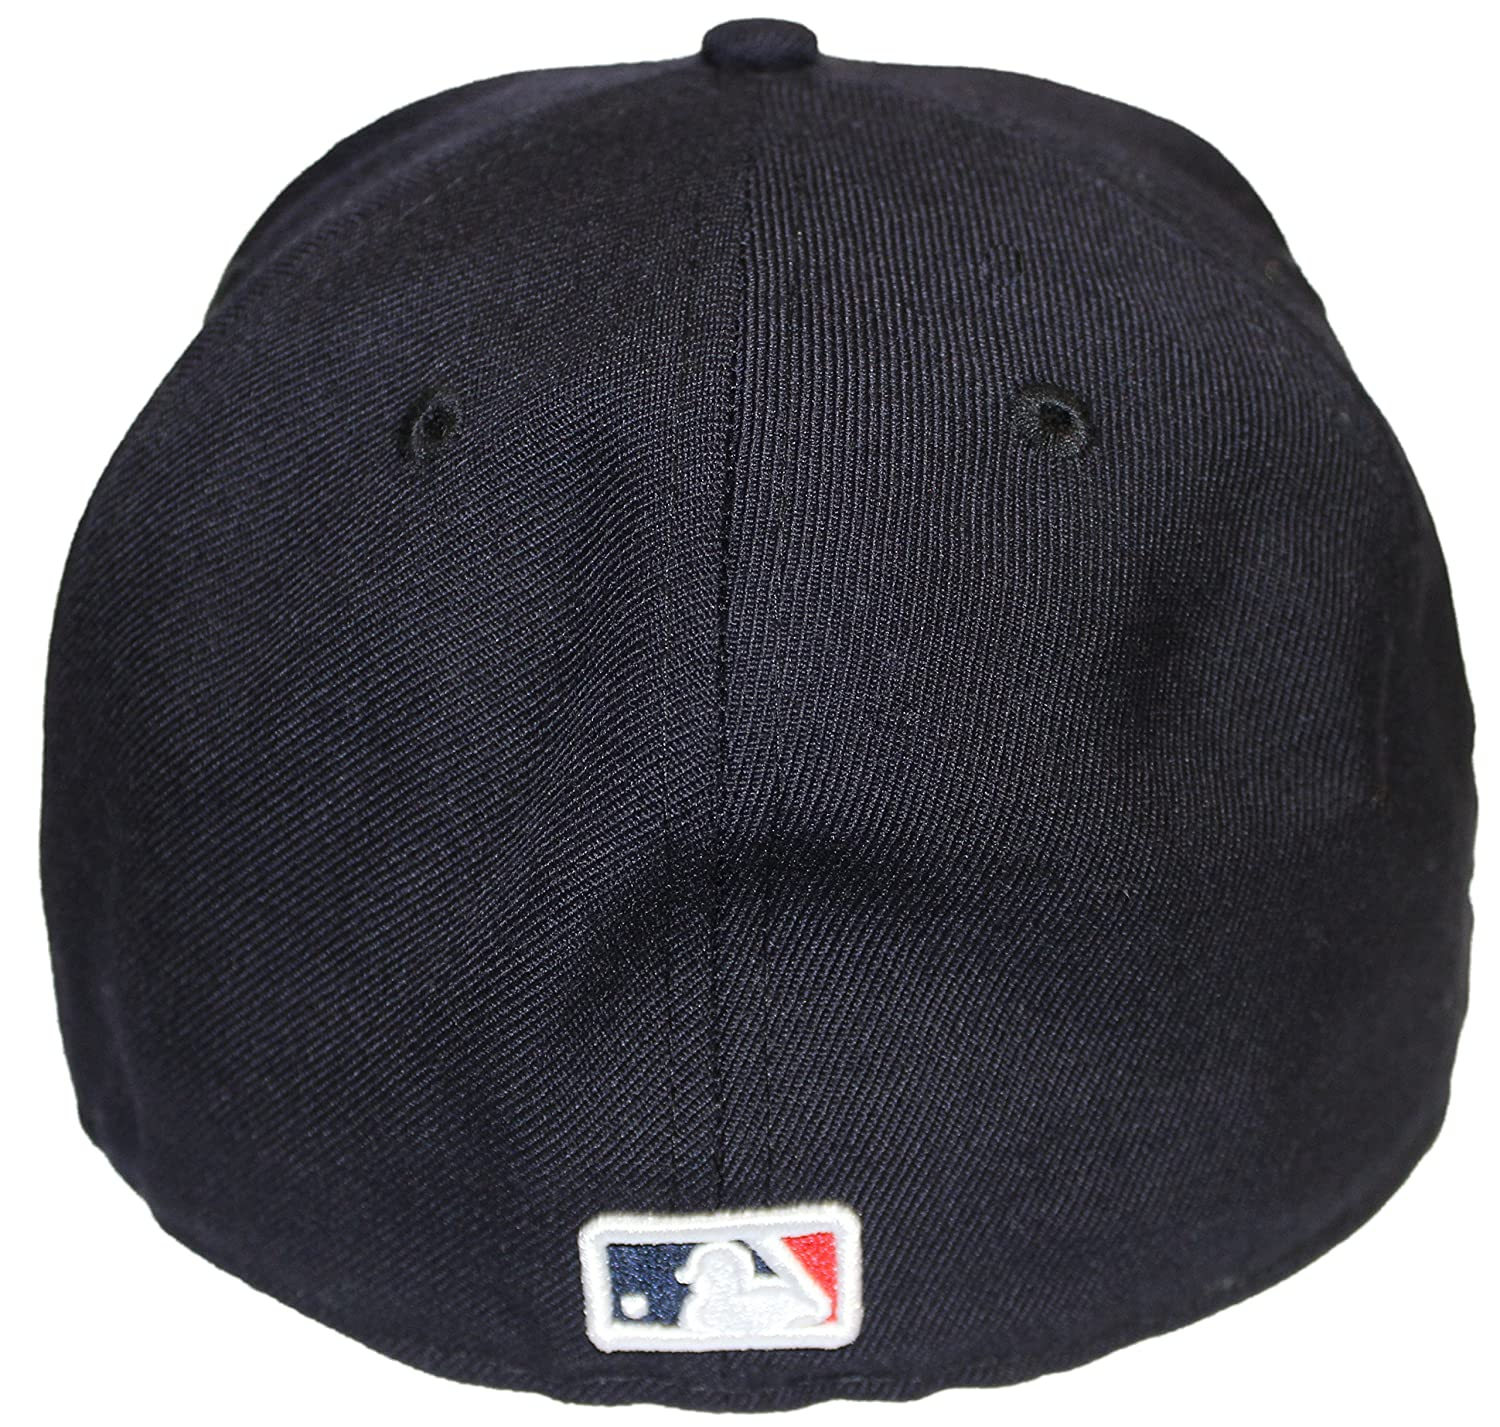 8c1f0b2f9d667 Amazon.com  New Era 59Fifty 2009 World Series Champion NY Yankees Fitted  Side Patch NY 7  Clothing